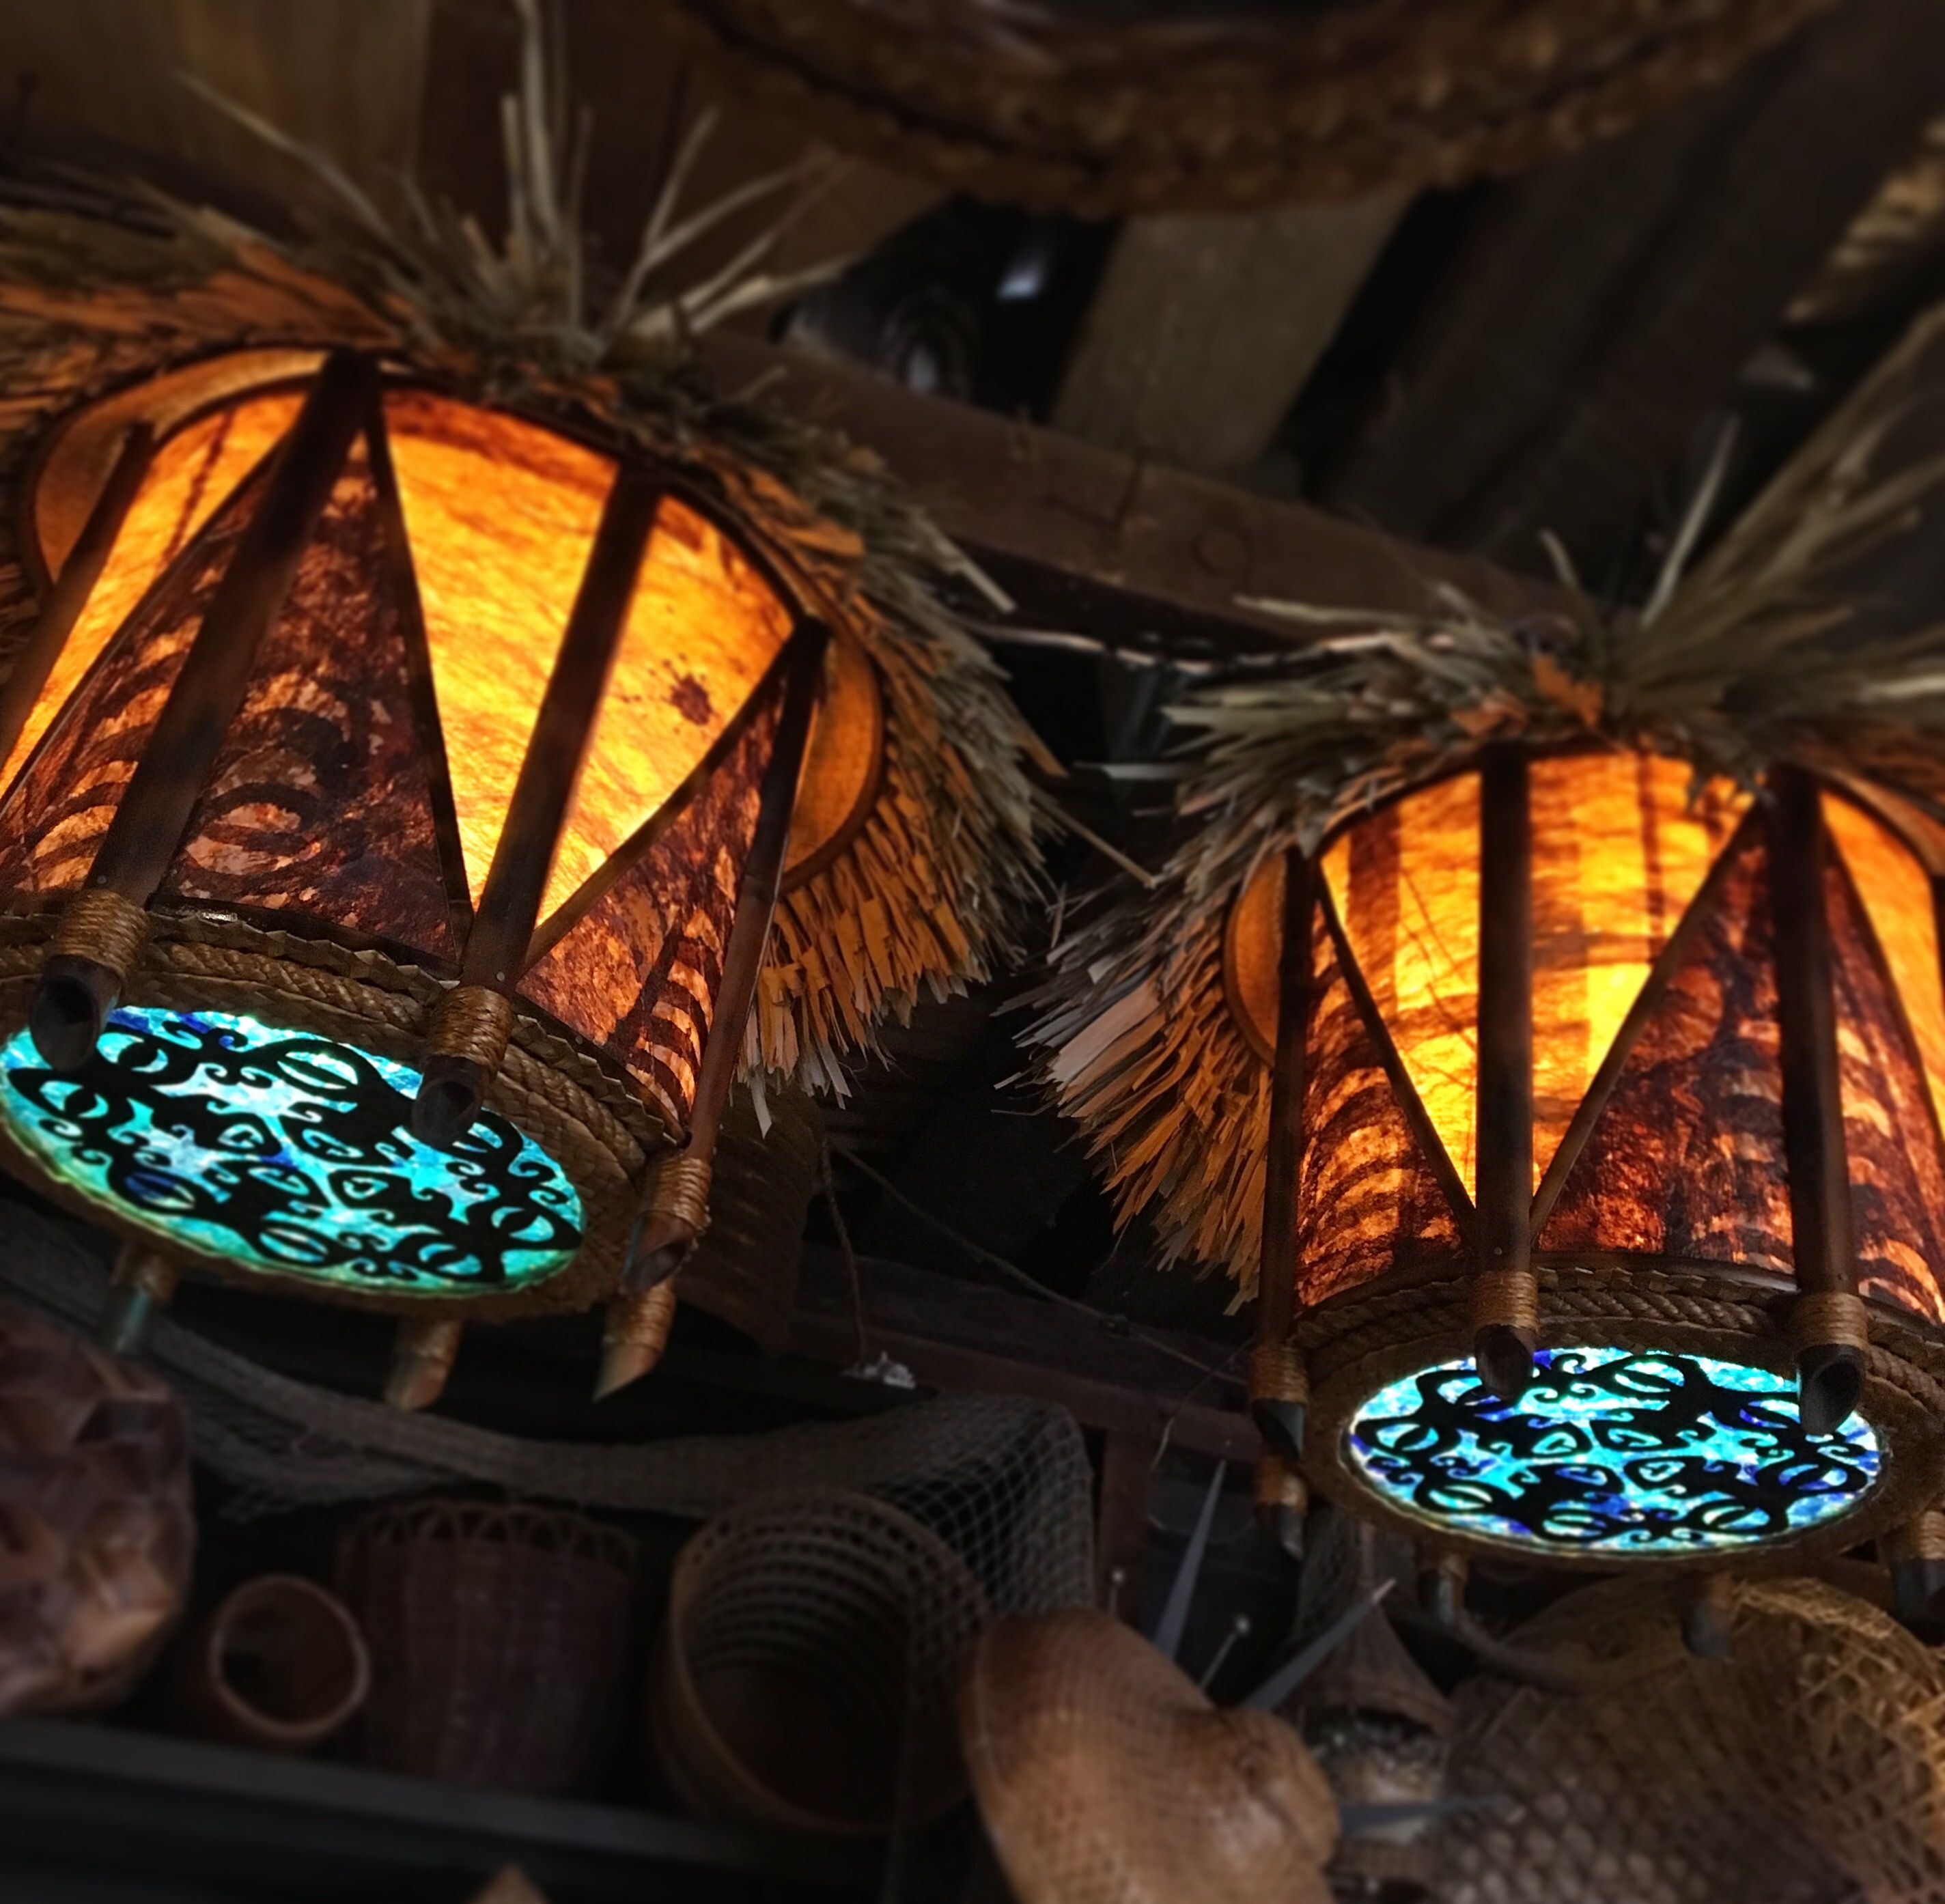 Good Pair Of Thatched Tapa Lamps With Marquesan Tiki And Sea Glass Bottom.